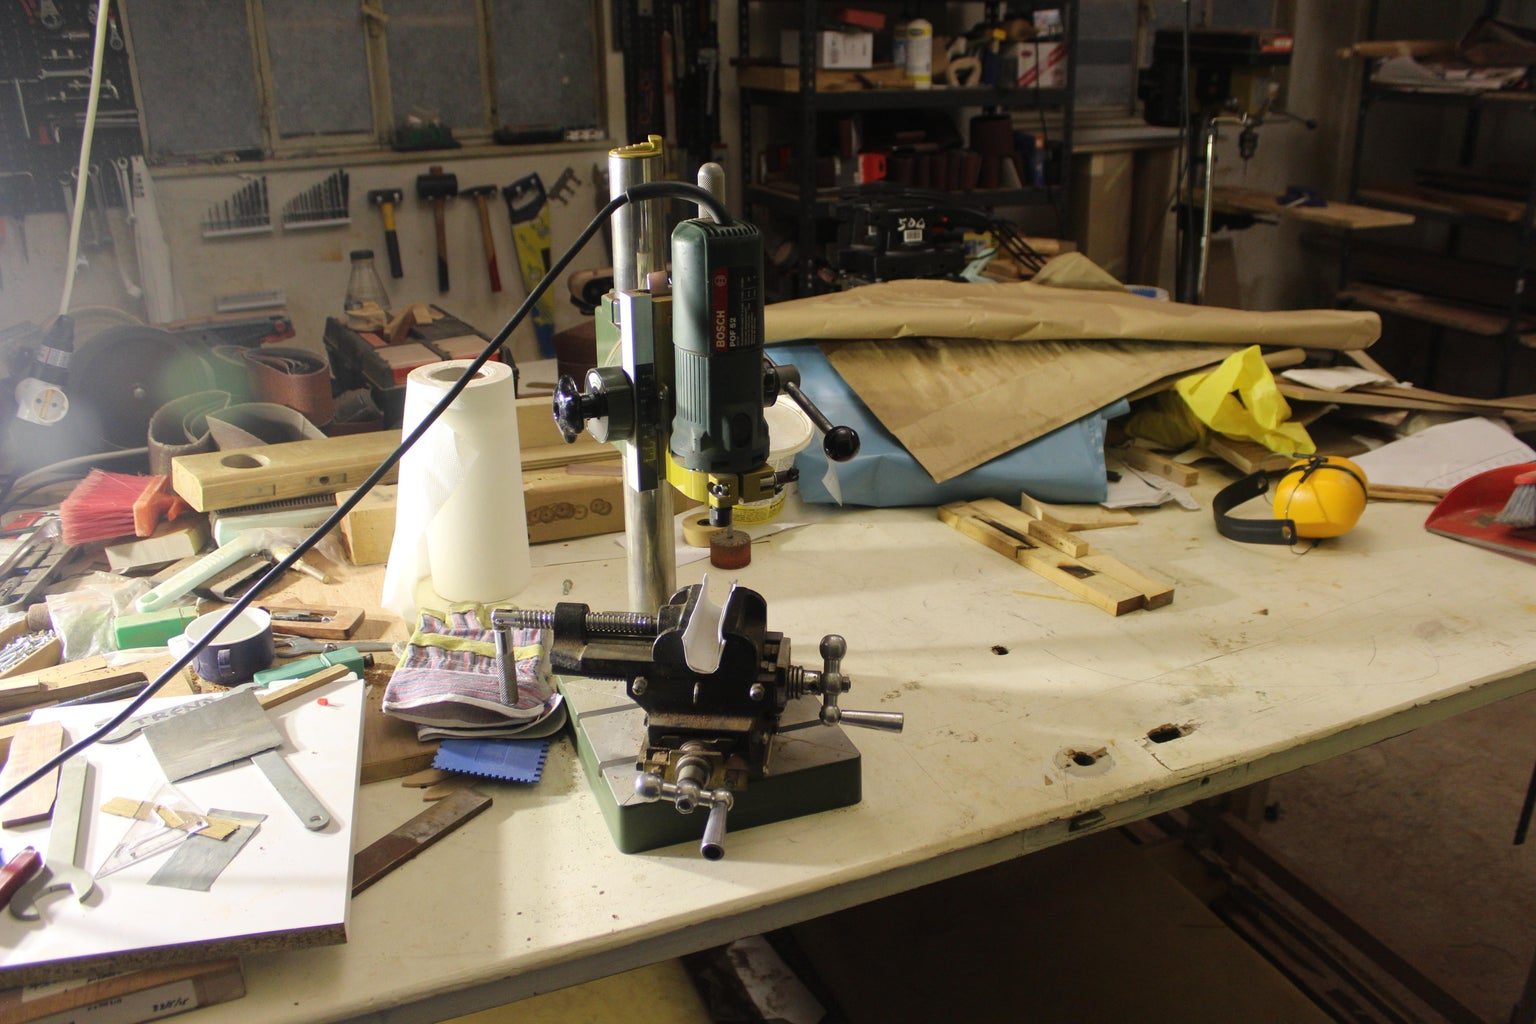 Gathering Tools: Woodworking